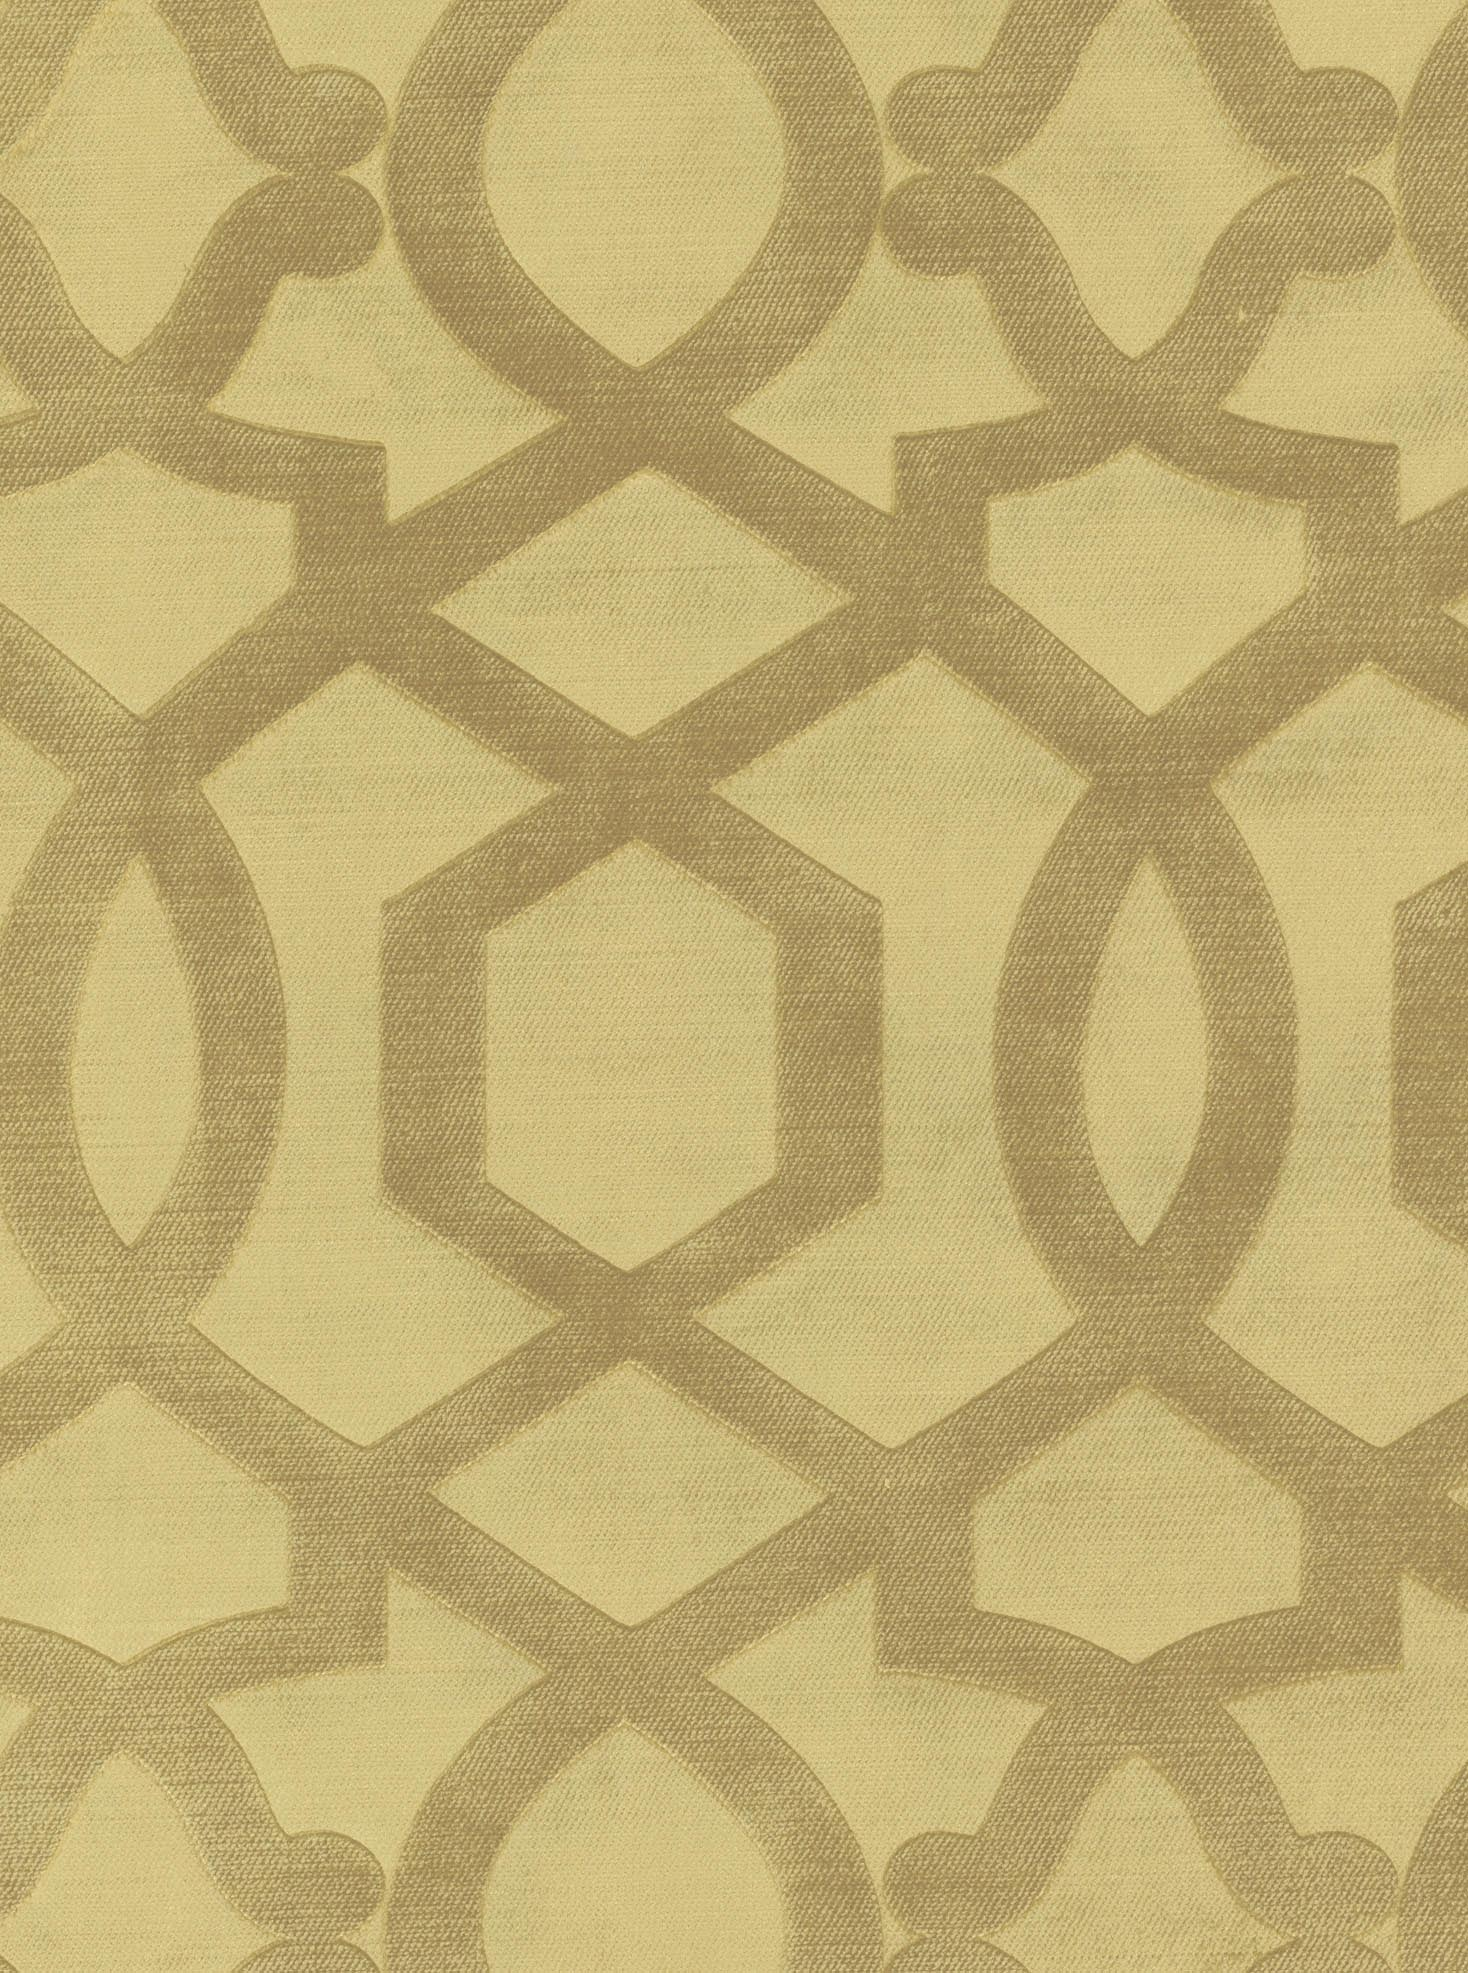 Home Decor 8\u0022x8\u0022 Fabric Swatch-IMAN Sultana Velvet Desert